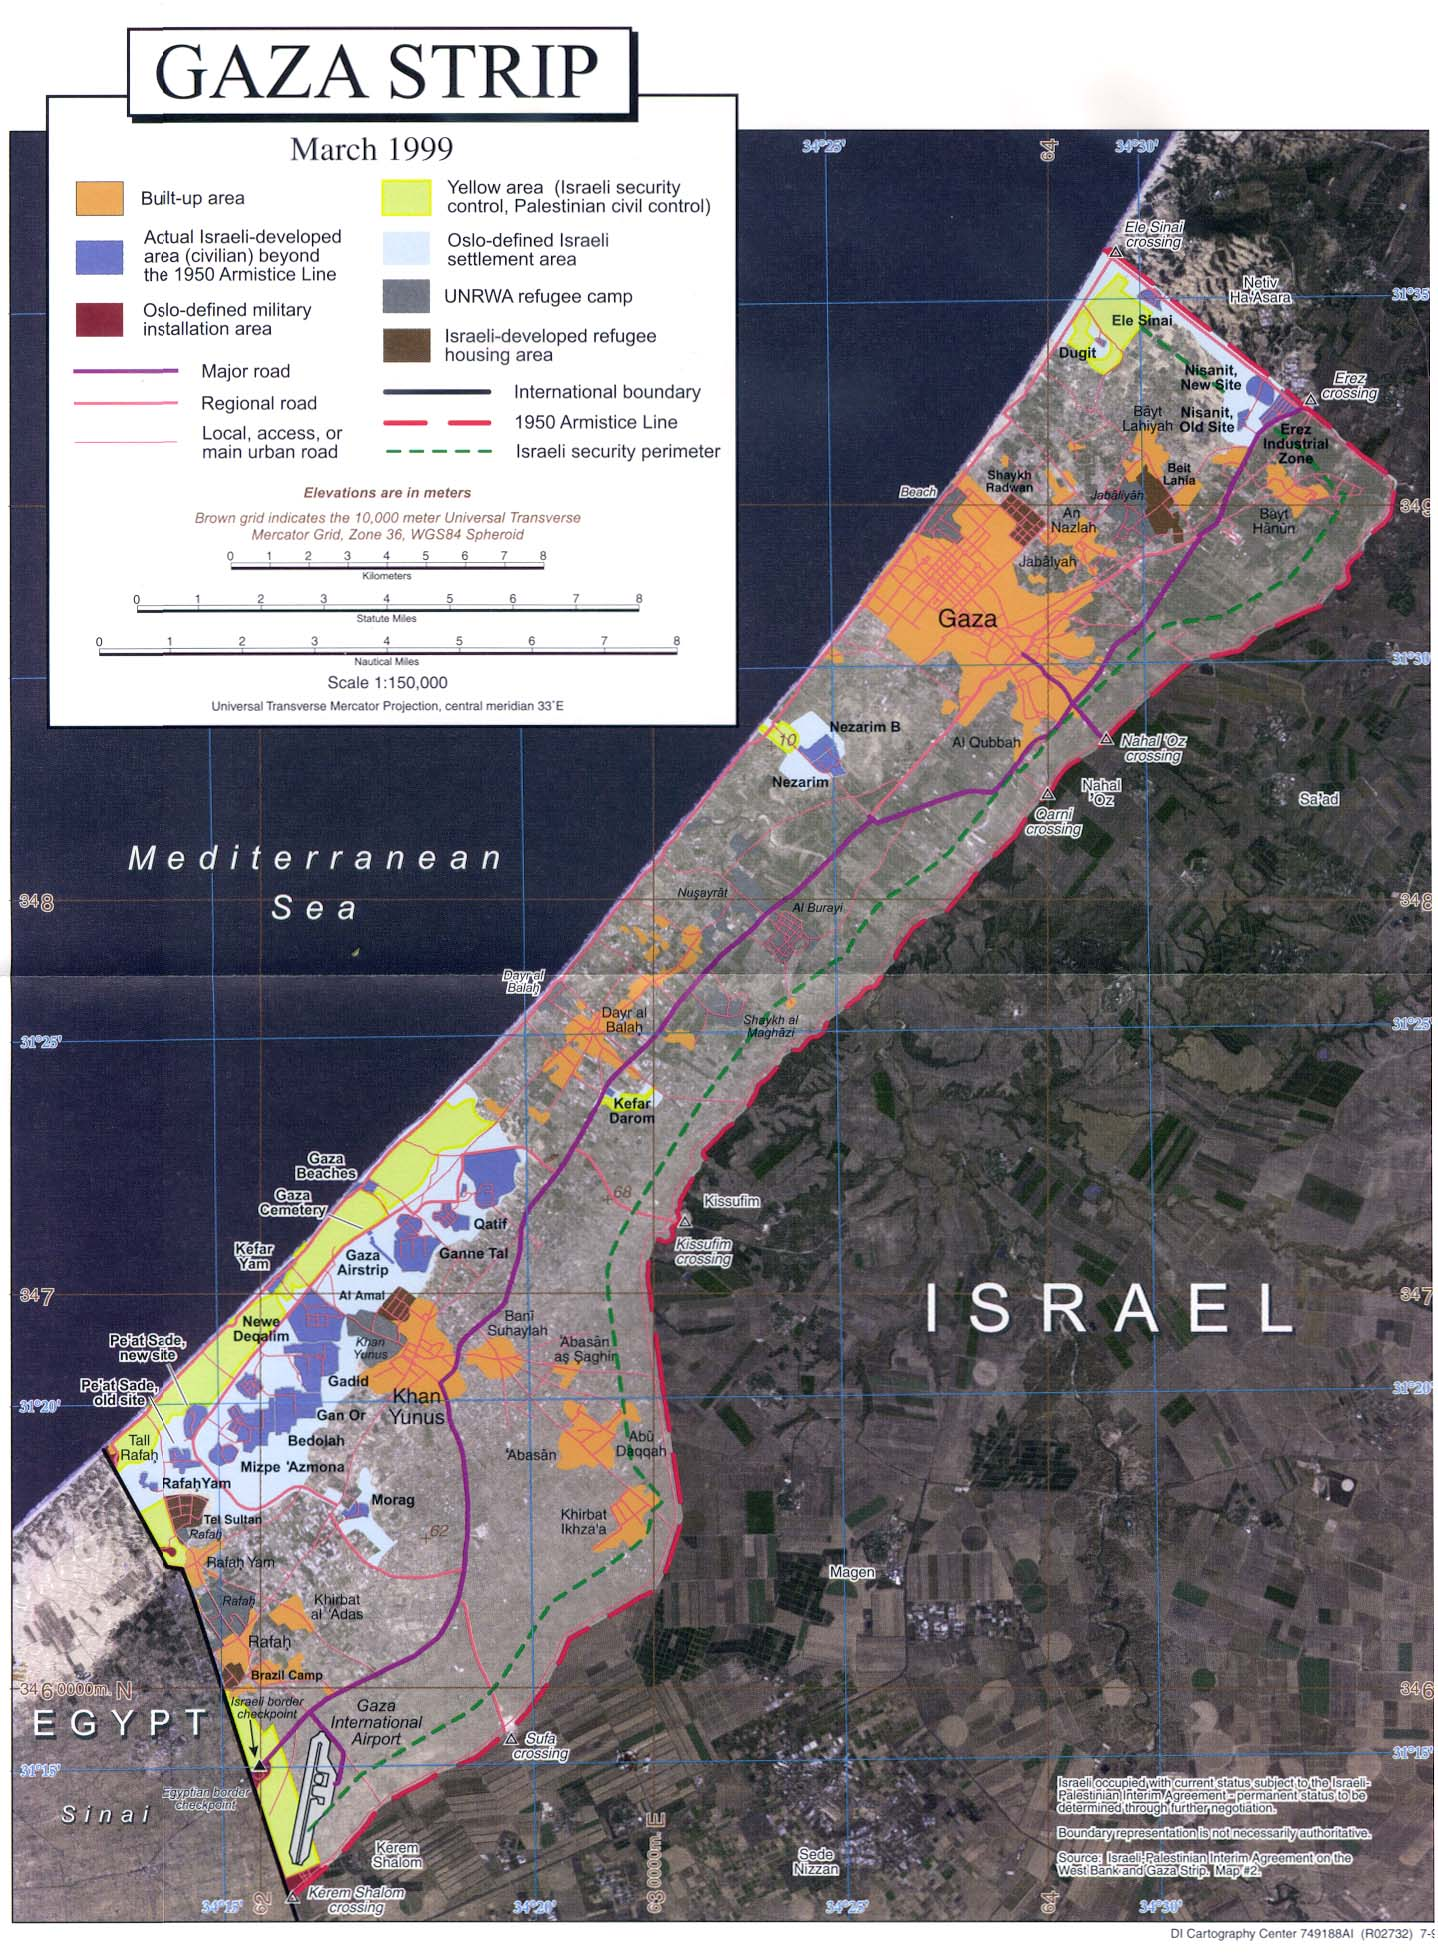 https://i2.wp.com/www.lib.utexas.edu/maps/middle_east_and_asia/gaza_strip_1999.jpg